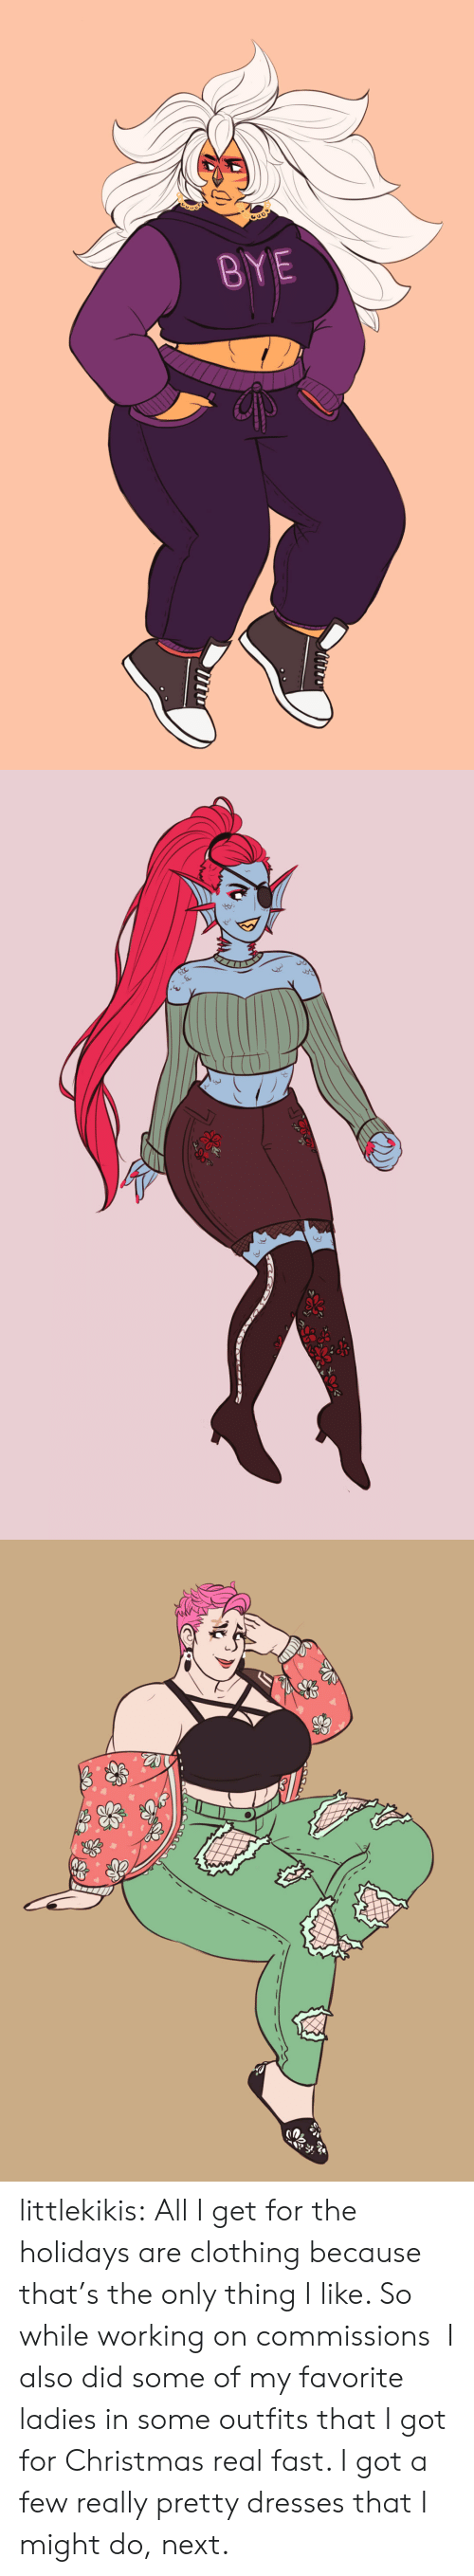 the holidays: BYE littlekikis:  All I get for the holidays are clothing because that's the only thing I like. So while working on commissions I also did some of my favorite ladies in some outfits that I got for Christmas real fast. I got a few really pretty dresses that I might do, next.